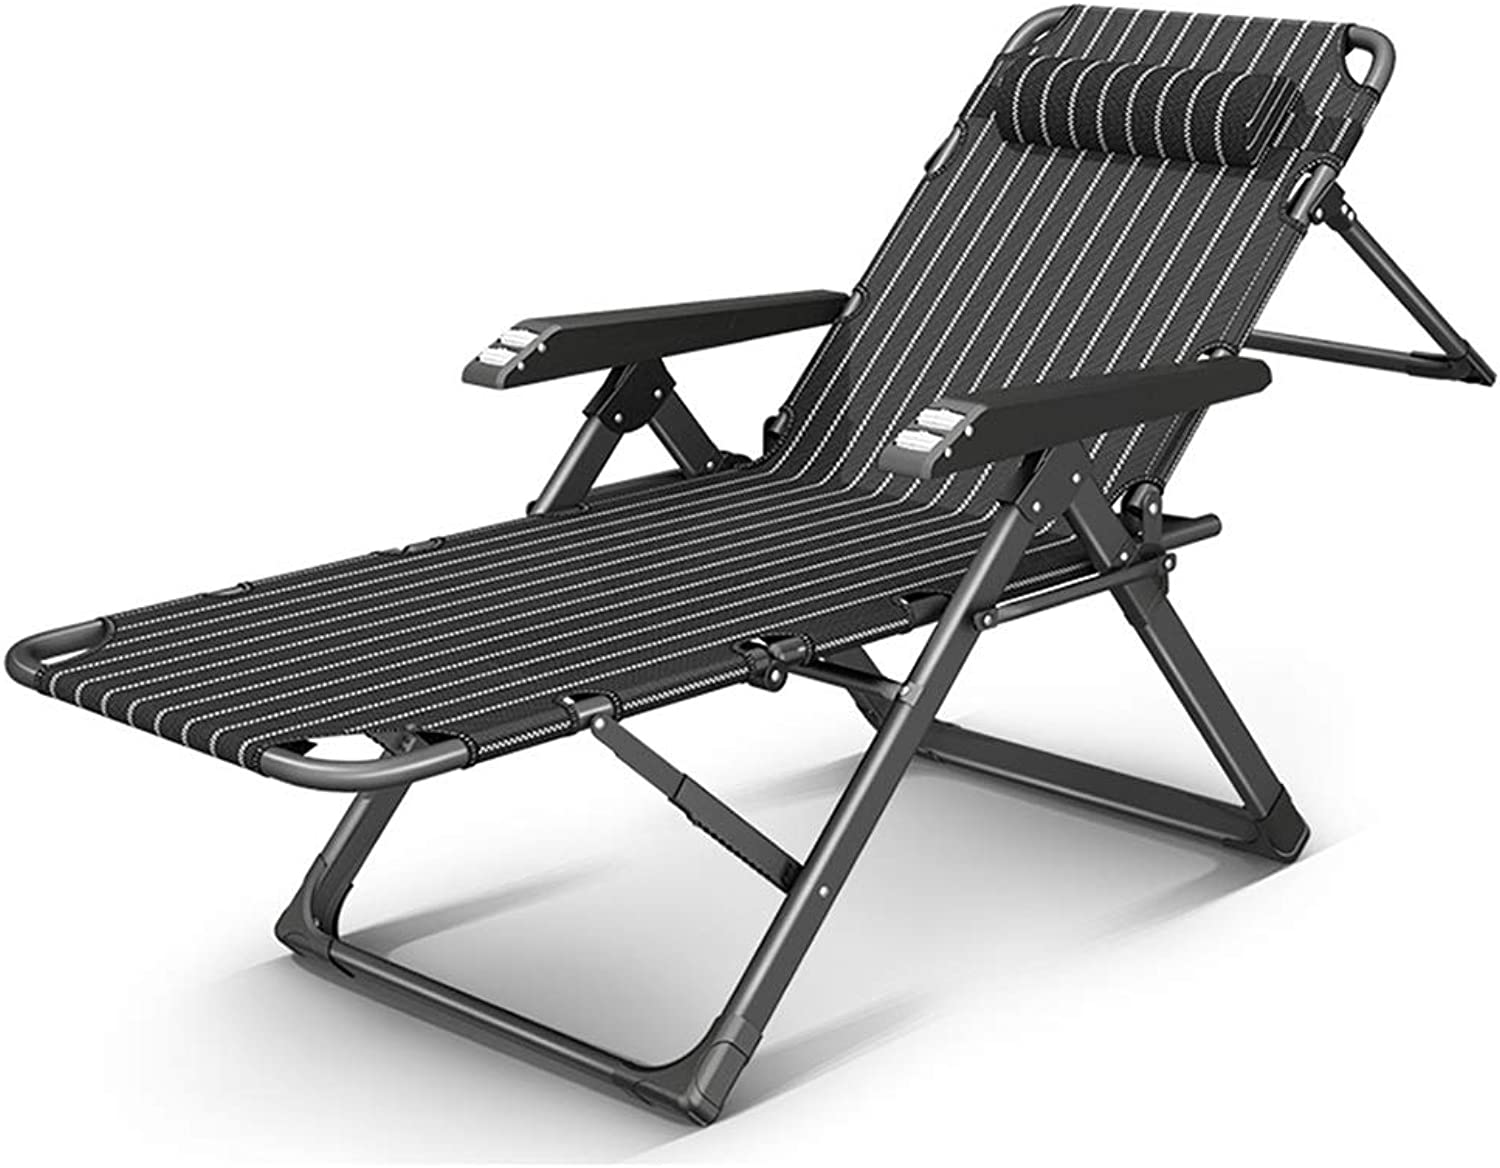 XEWNEG Sun Lounger,Folding Bed Leisure Chair, Adult Home Beach Chair, 5Position Backrest Adjustment with Removable Cotton Pad(178×64×41cm) (color   A)